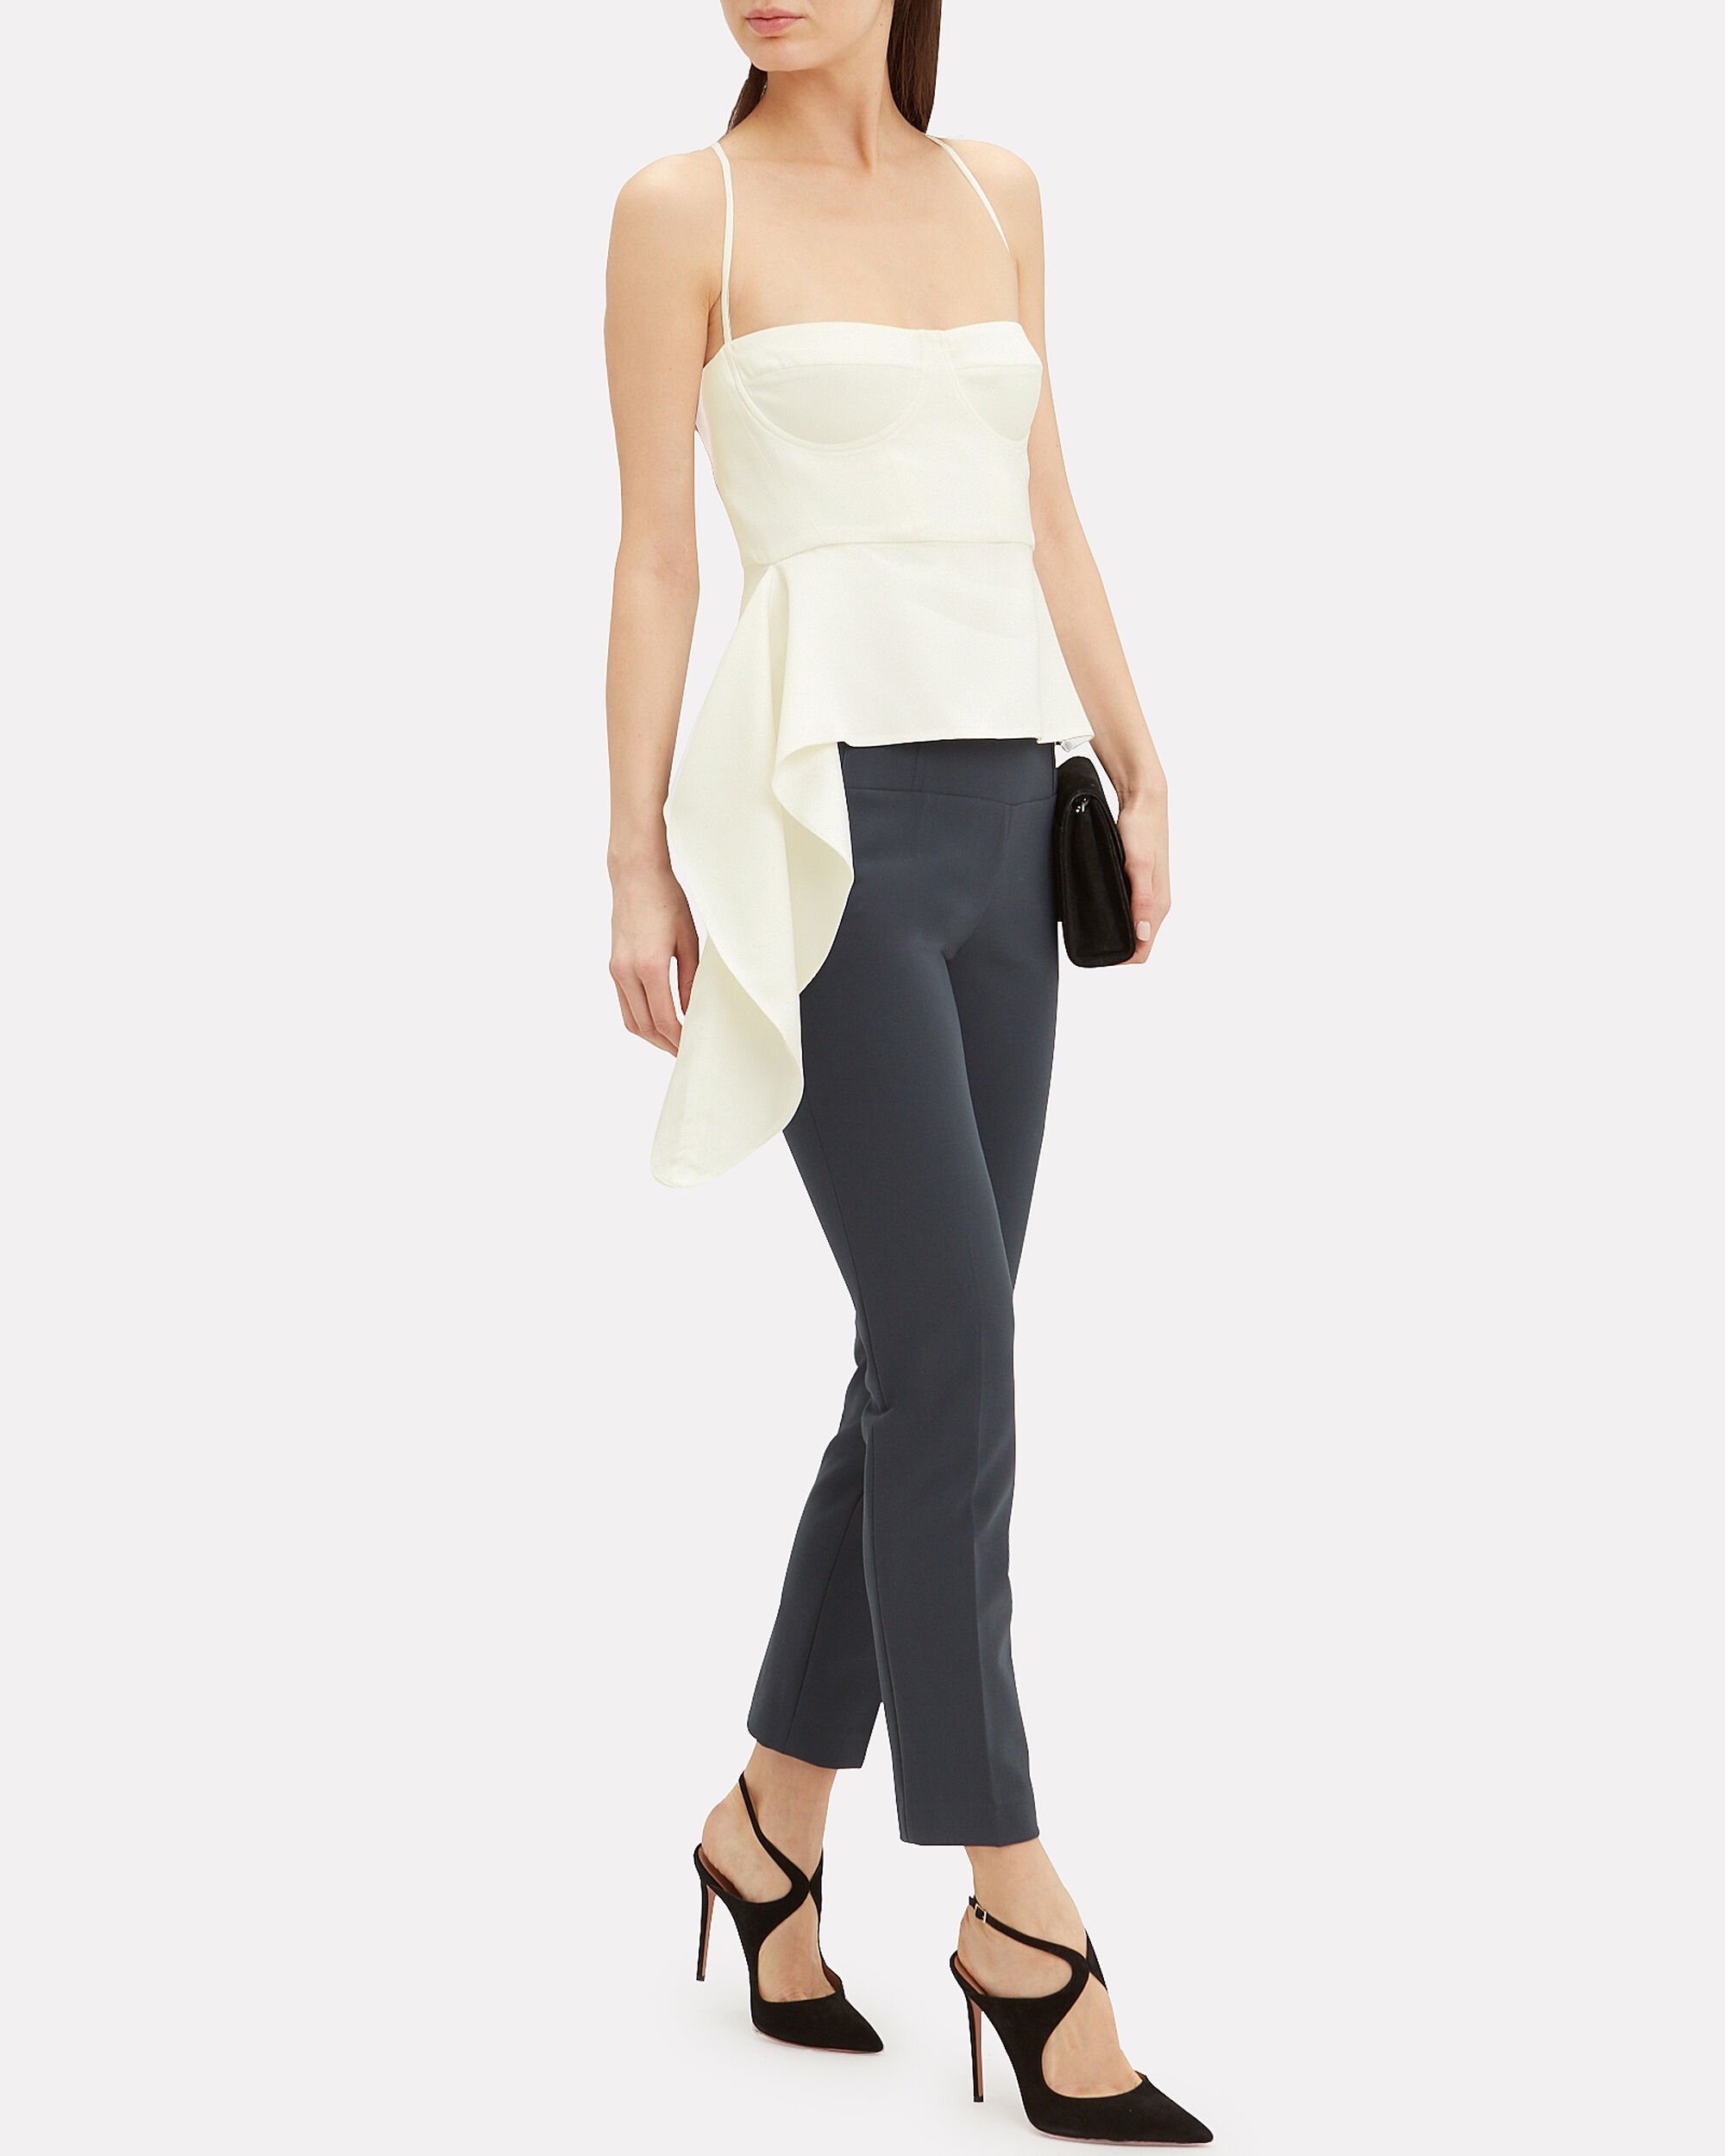 Drape Accent Bustier Suiting Top, IVORY, hi-res